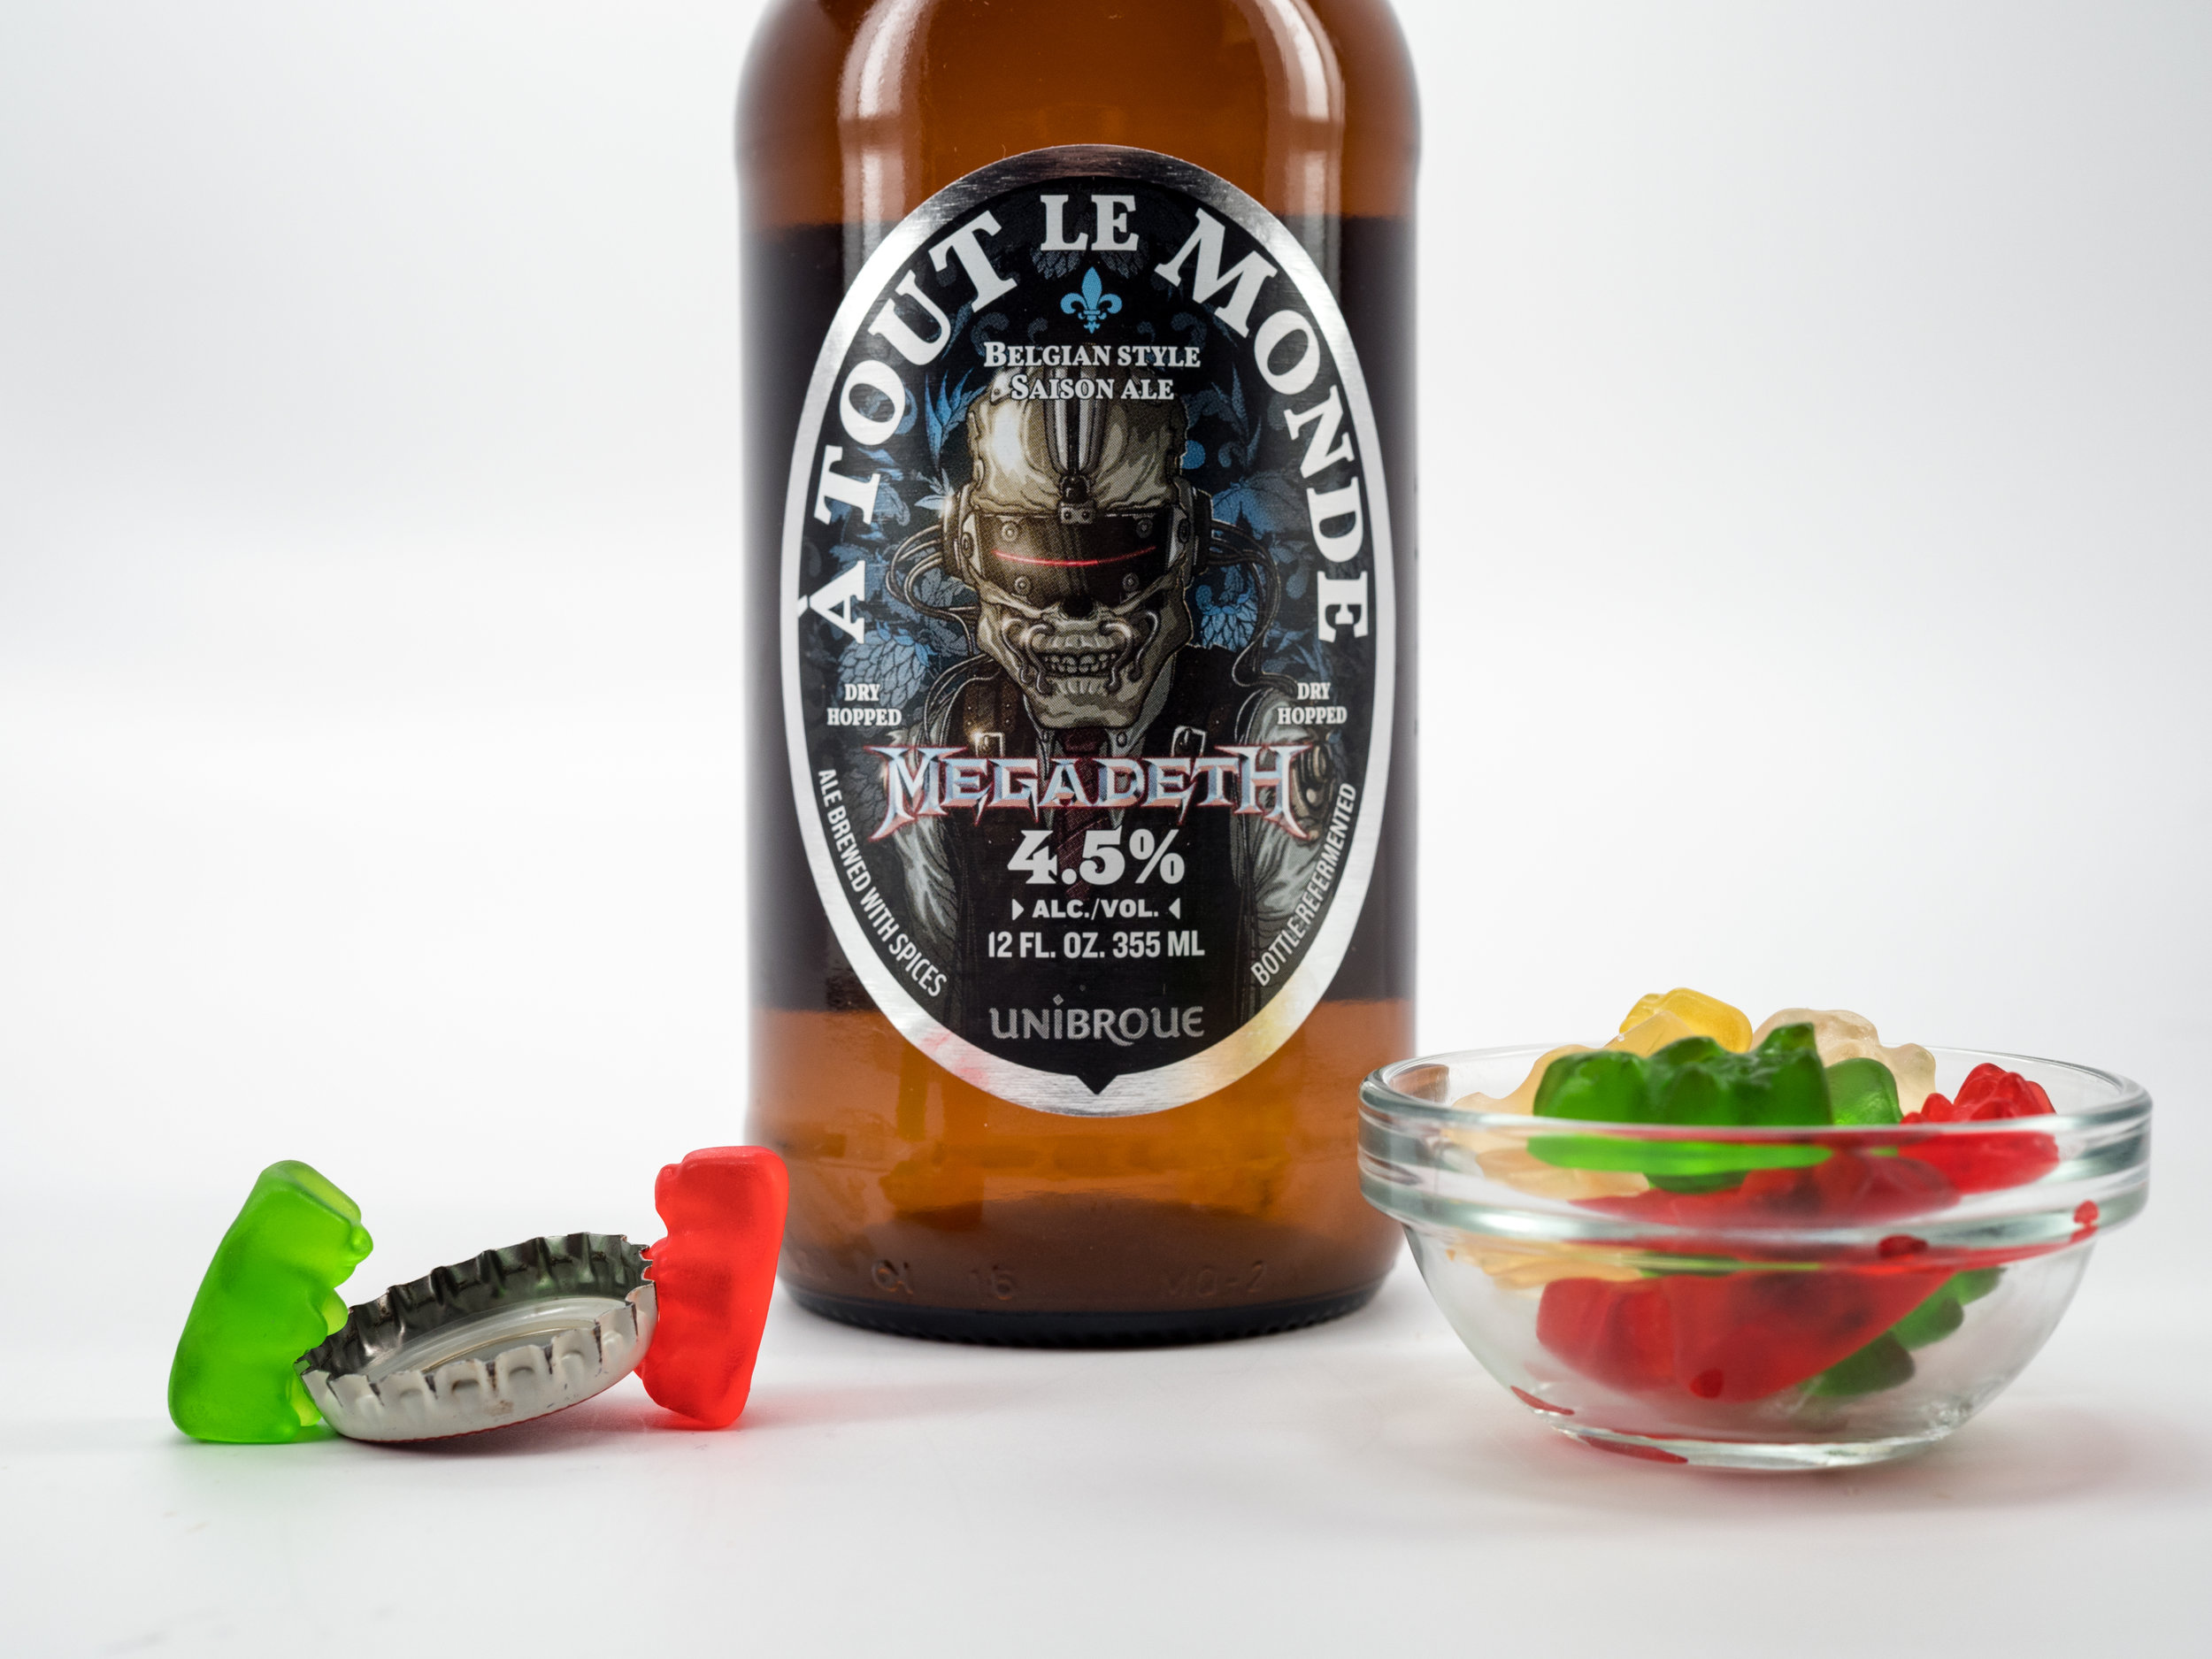 Musings by the Glass - Pairing Beer with Halloween Candy - Unibroue Megadeth Belgian Style Saison and Gummy Bears